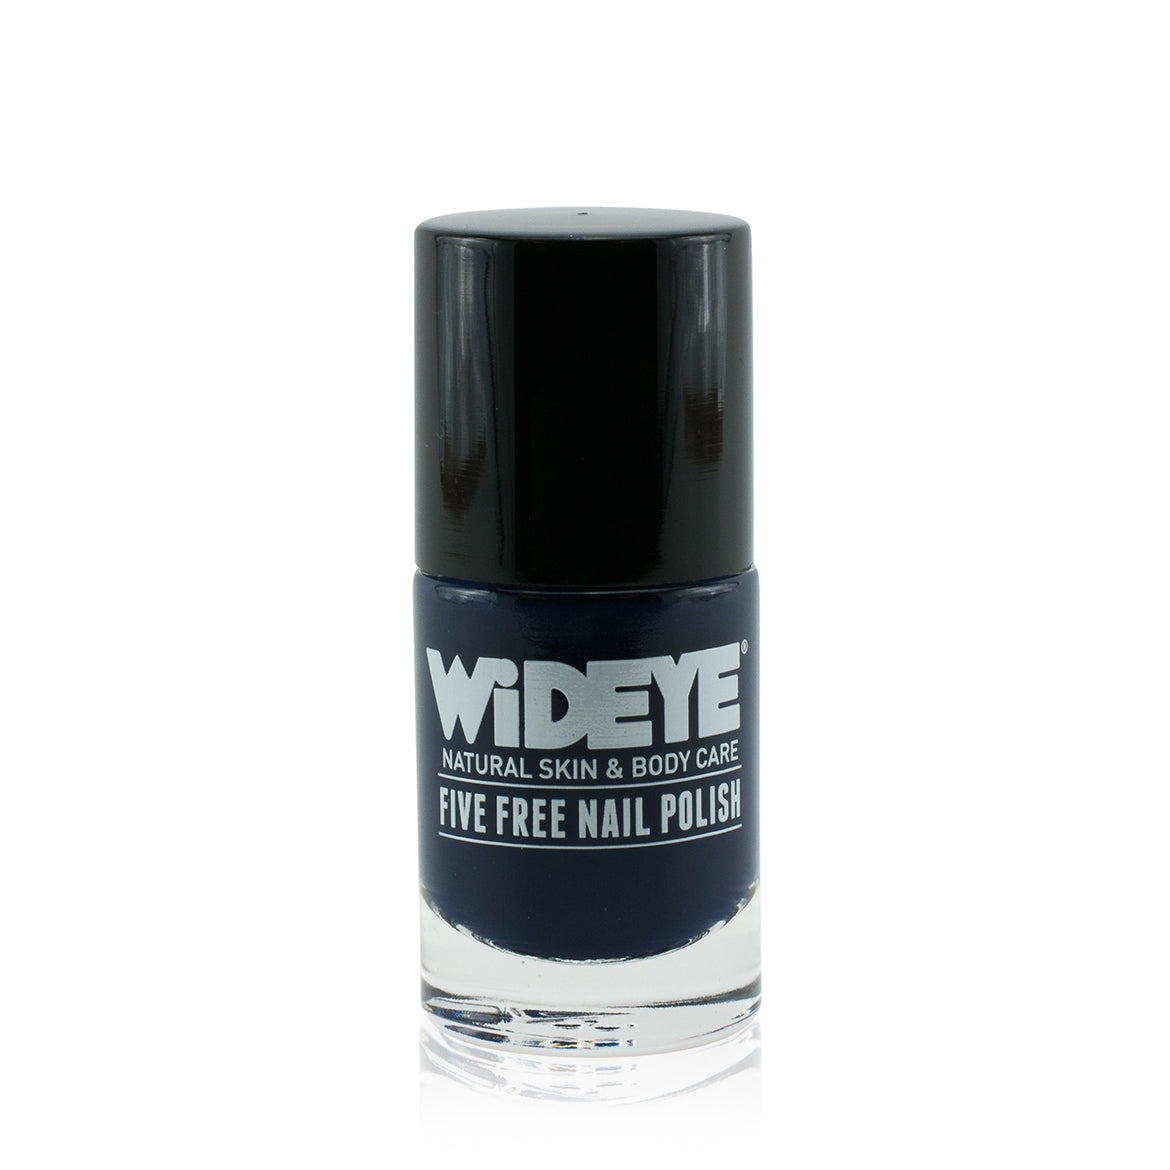 Dark blue nail varnish in glass bottle by WiDEYE